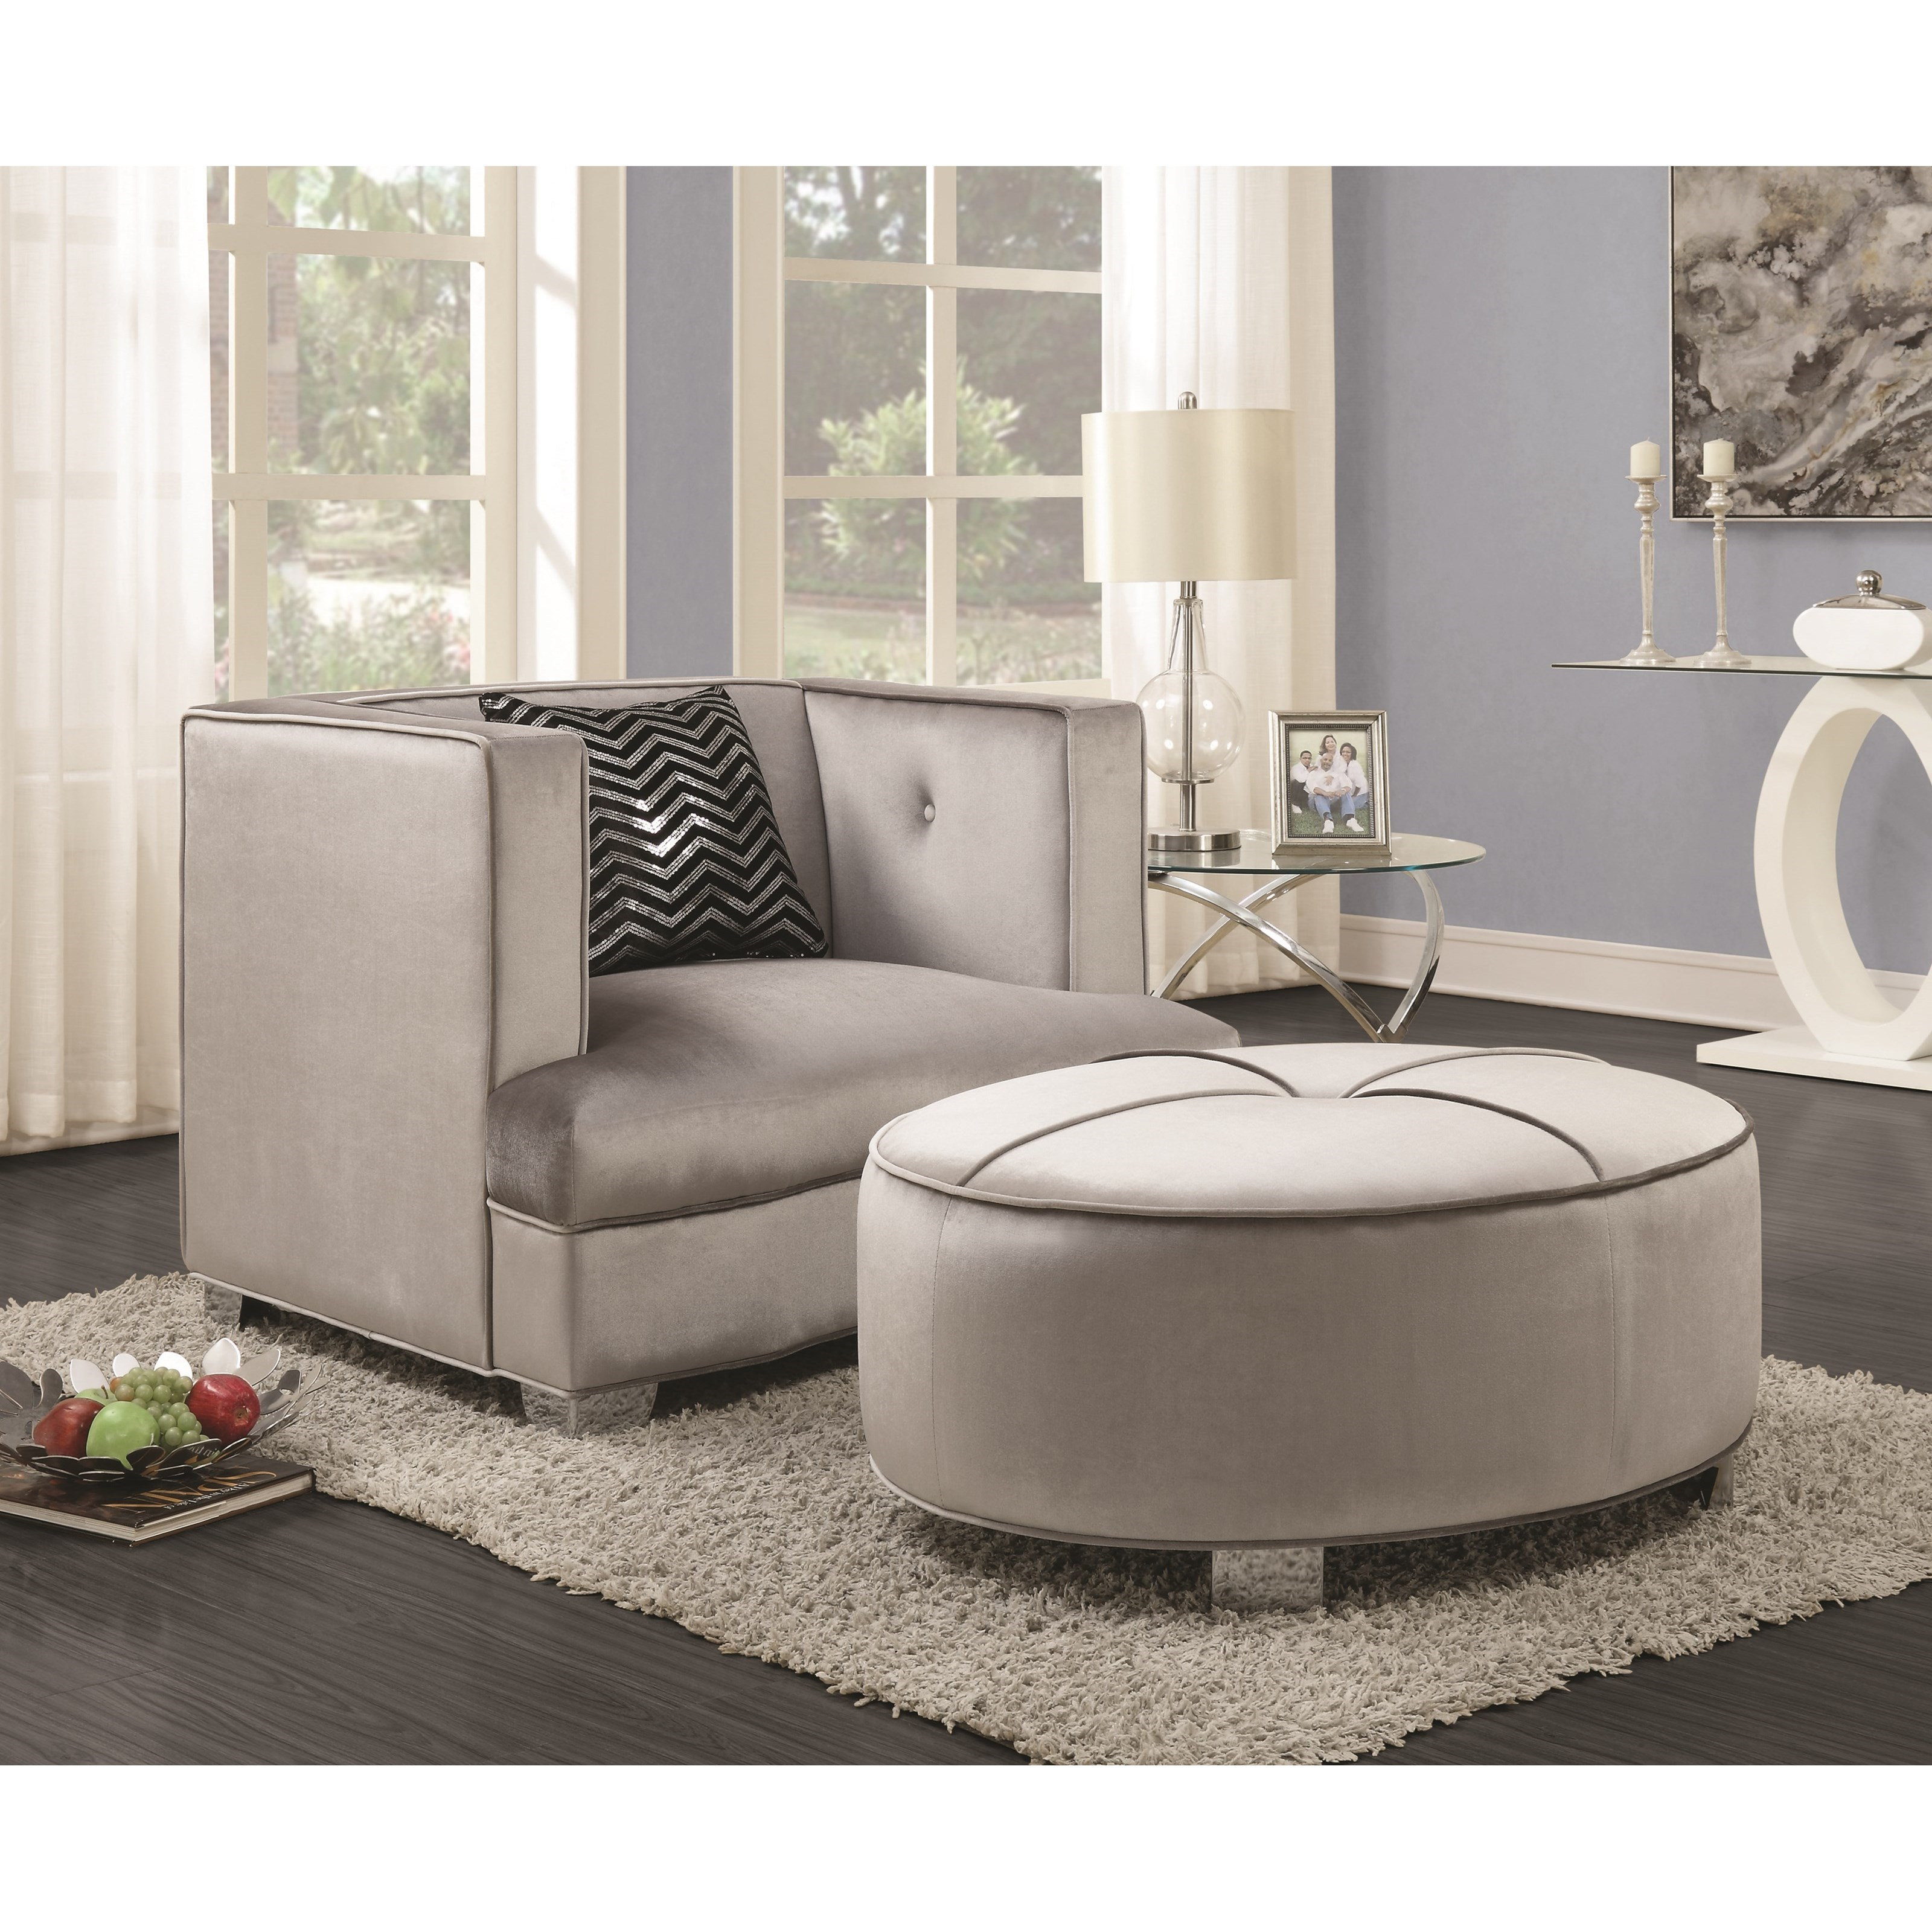 coaster caldwell 505884 glamorous ottoman del sol furniture ottomans. Black Bedroom Furniture Sets. Home Design Ideas